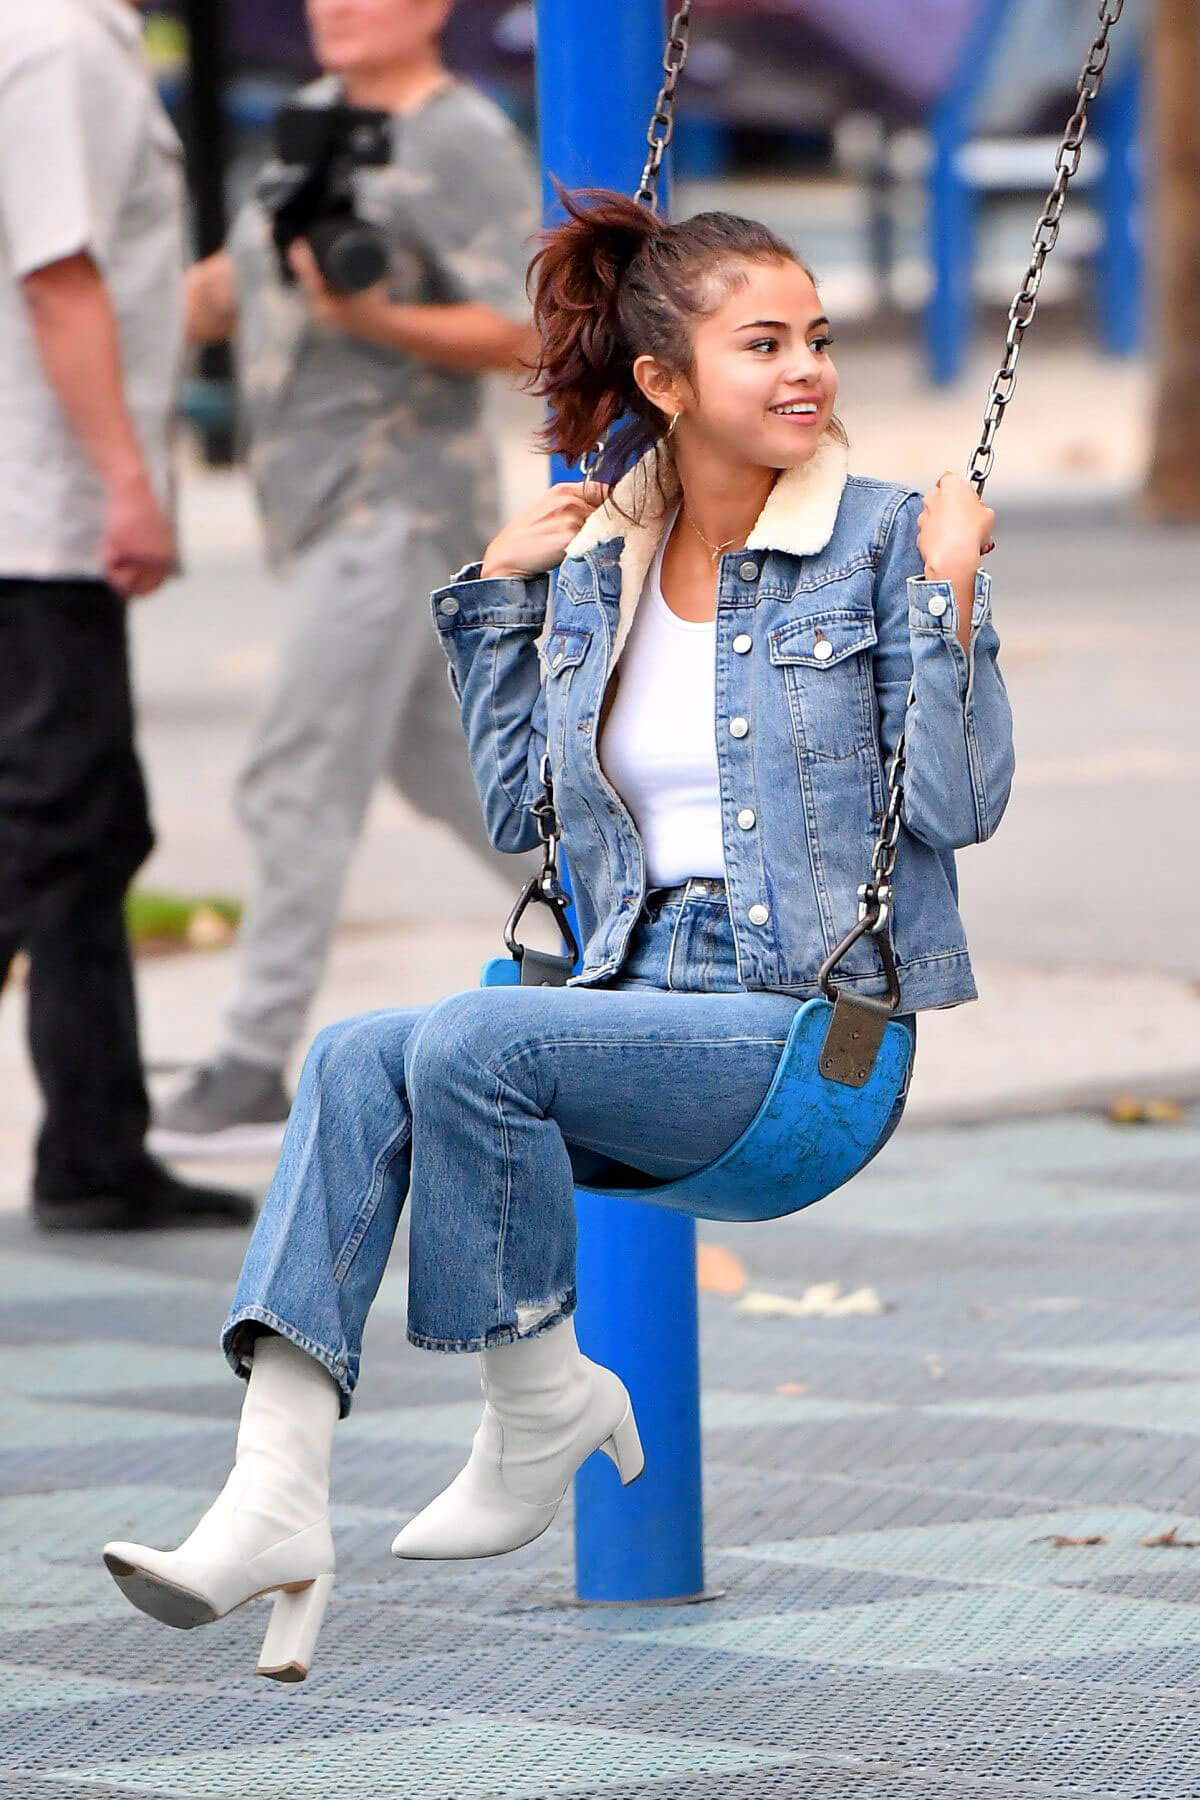 Selena Gomez Wears Denim Jacket Amp Jeans At A Park In